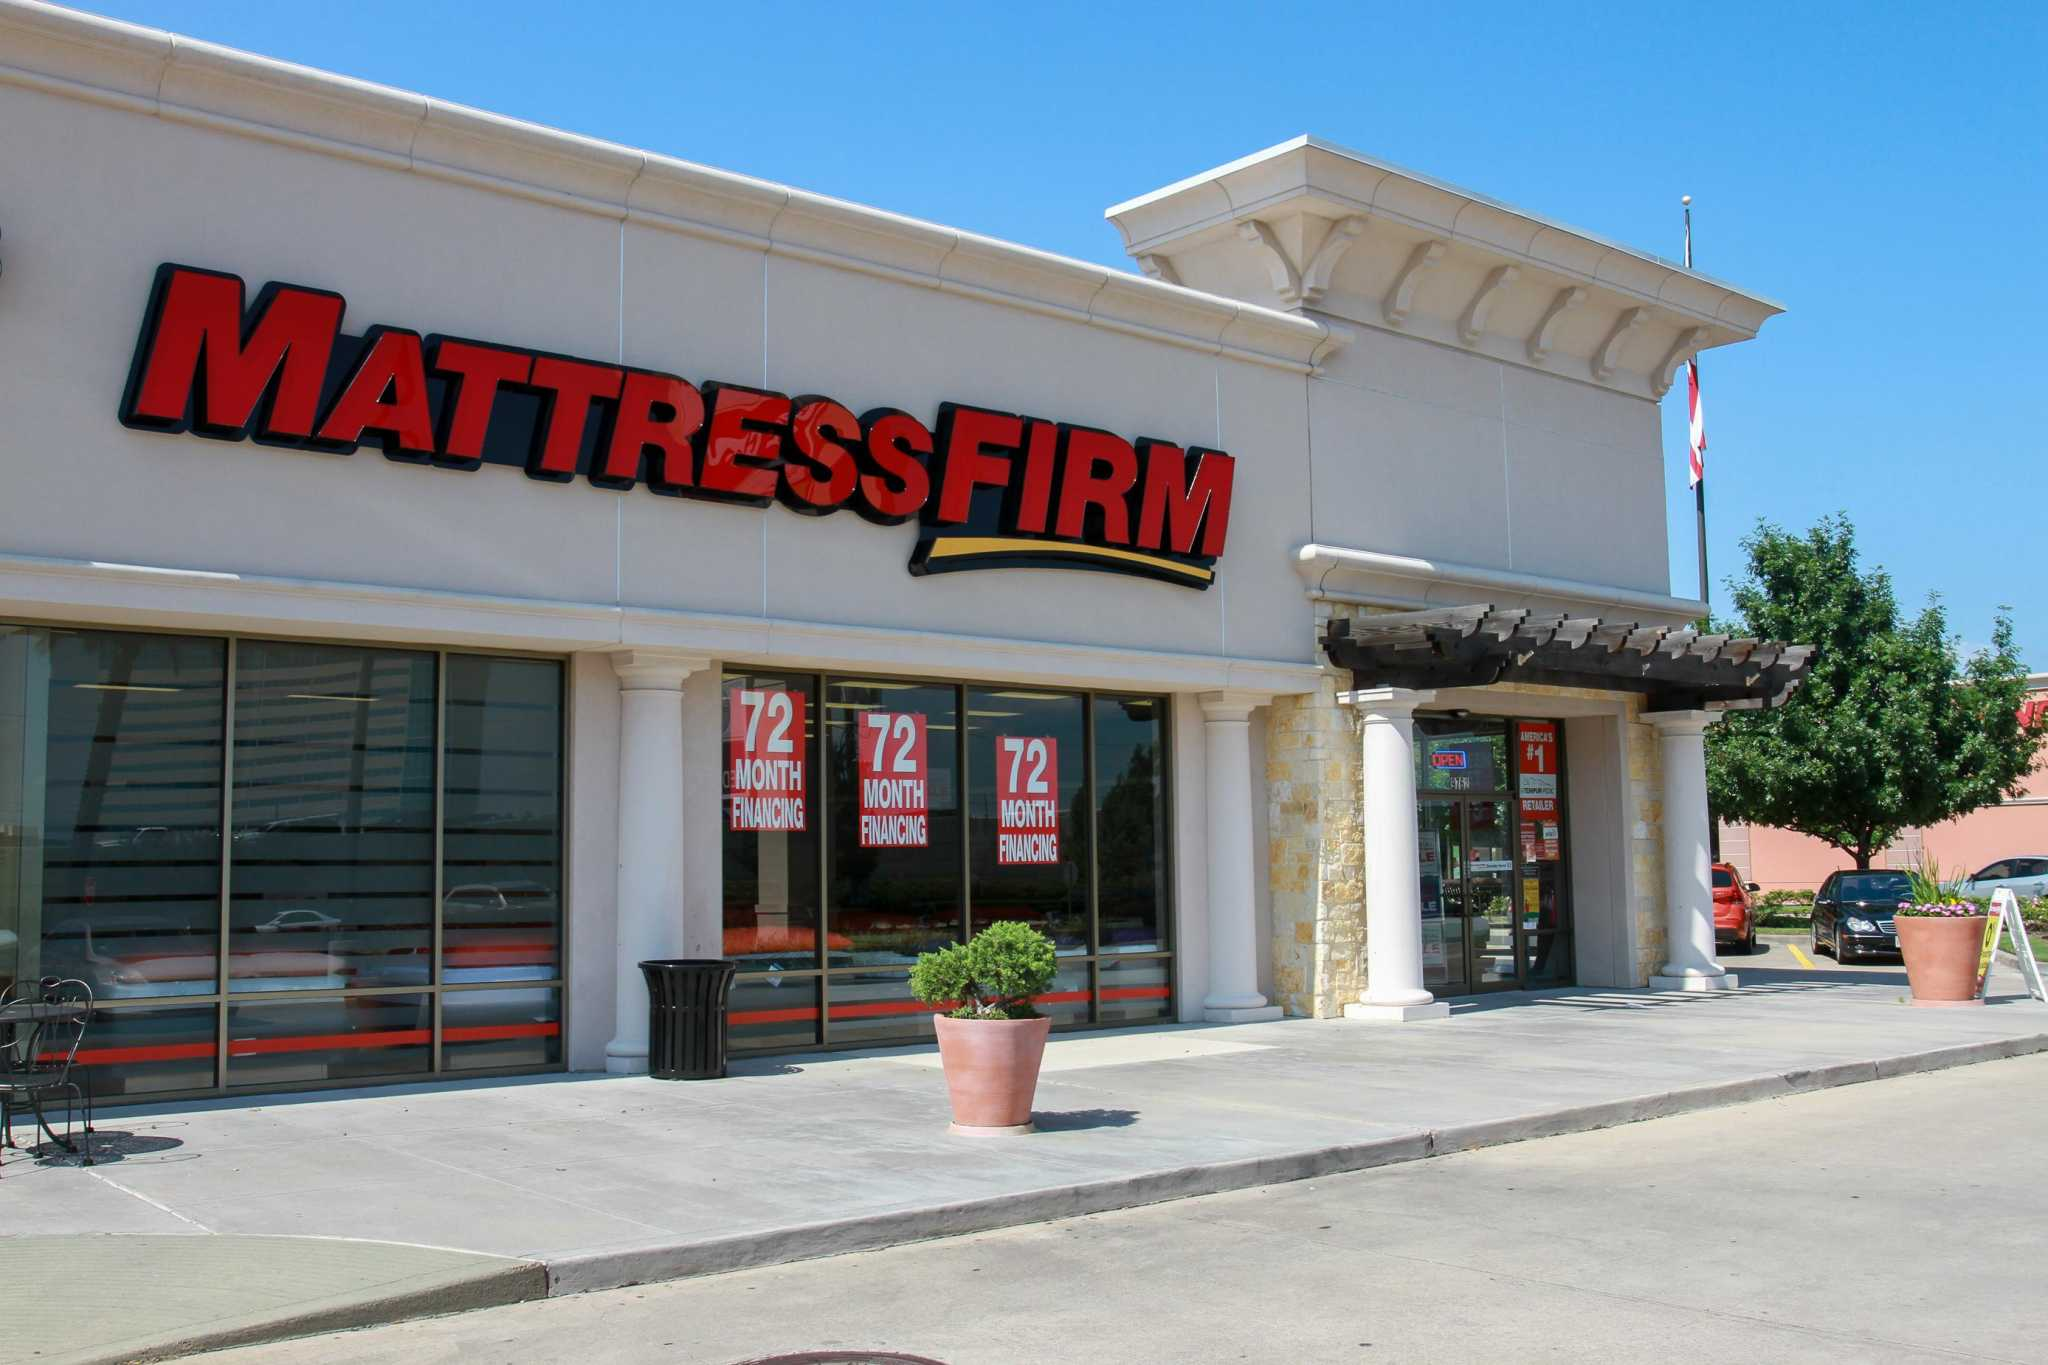 Mapping all the mattress firm stores houston chronicle for Michaels craft store houston